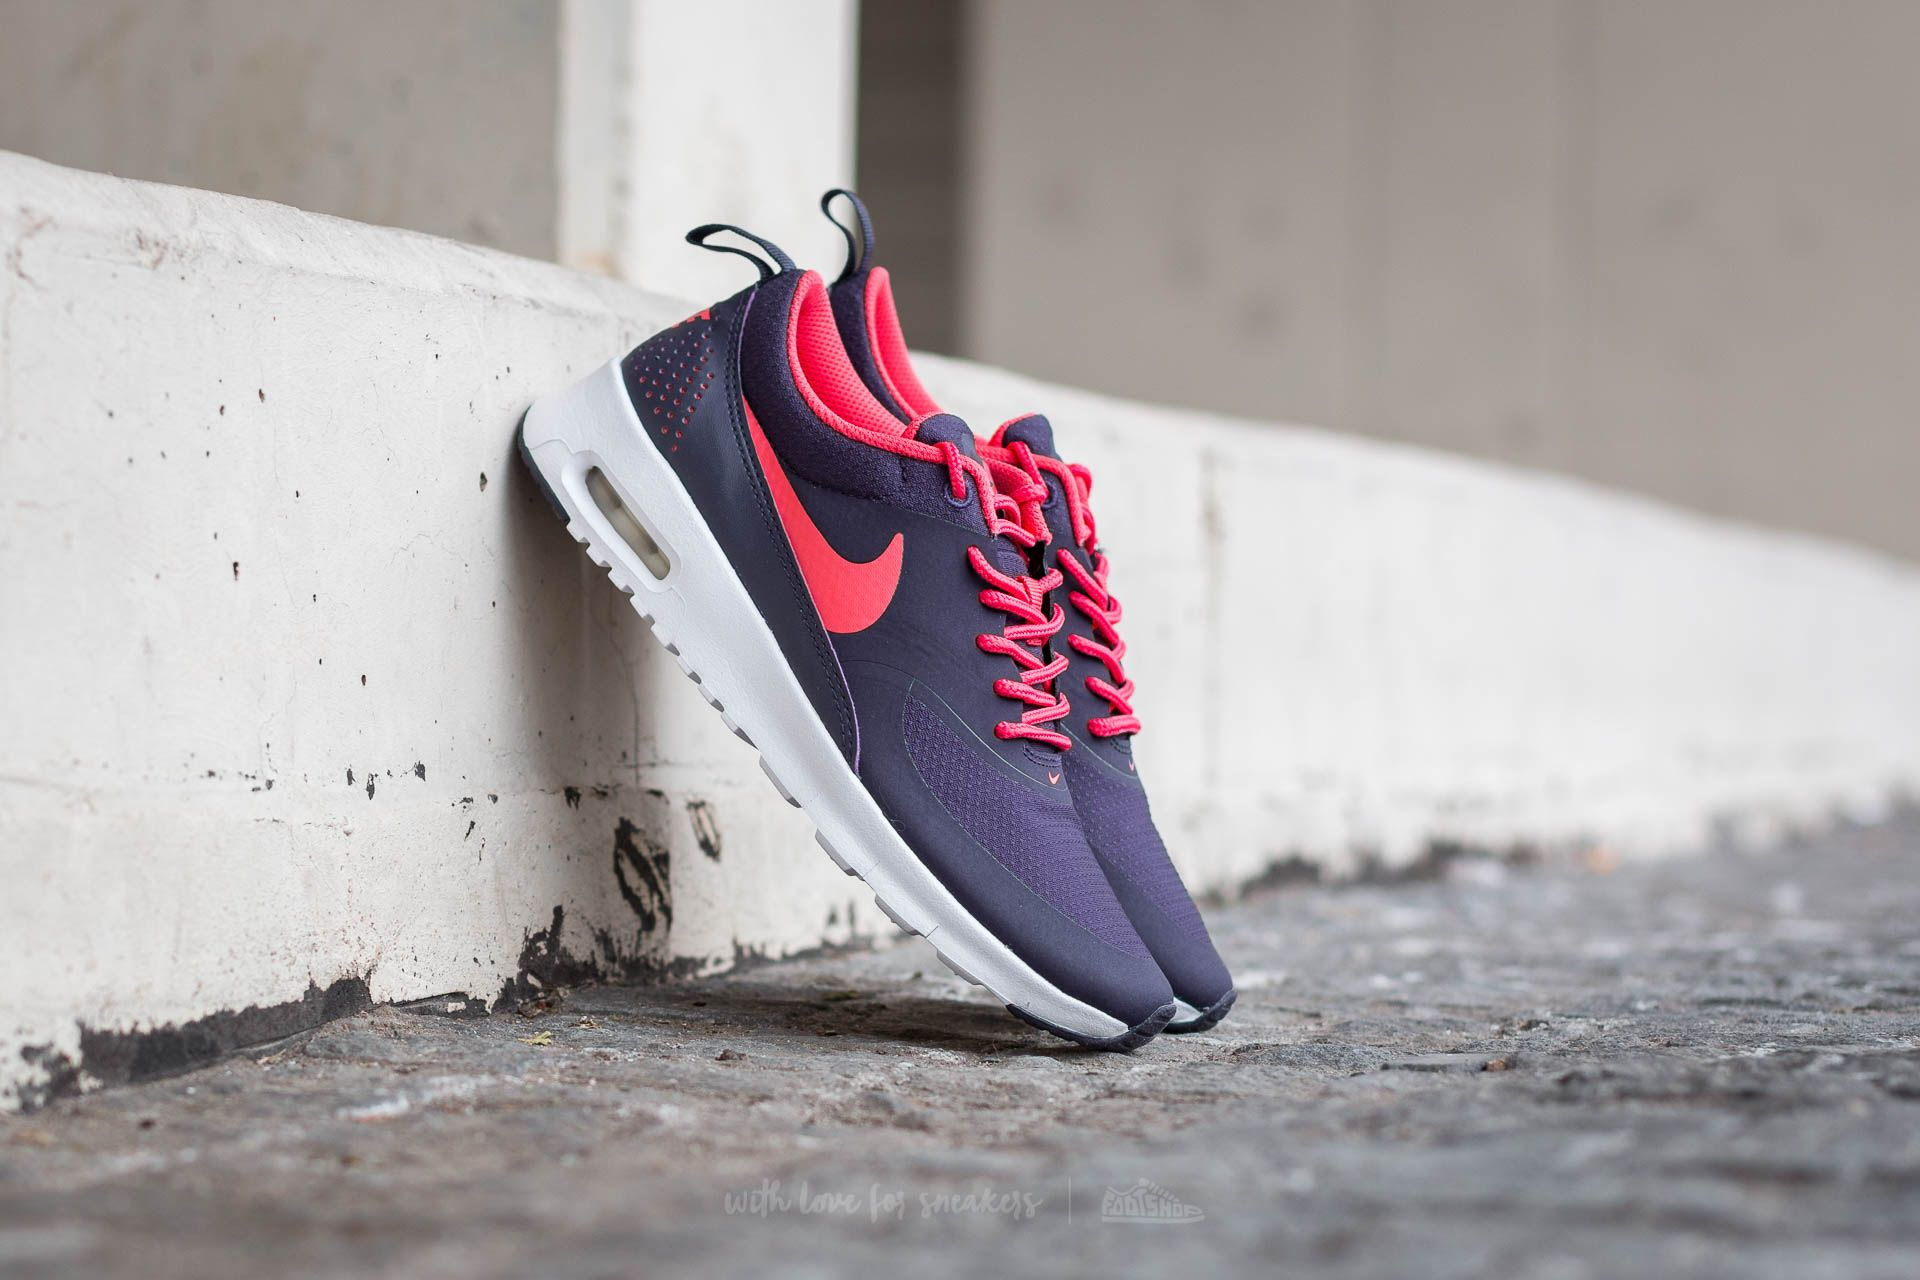 Glow Air Nike Ember Max WhiteFootshop TheagsPurple Dynasty BshdCrtQx